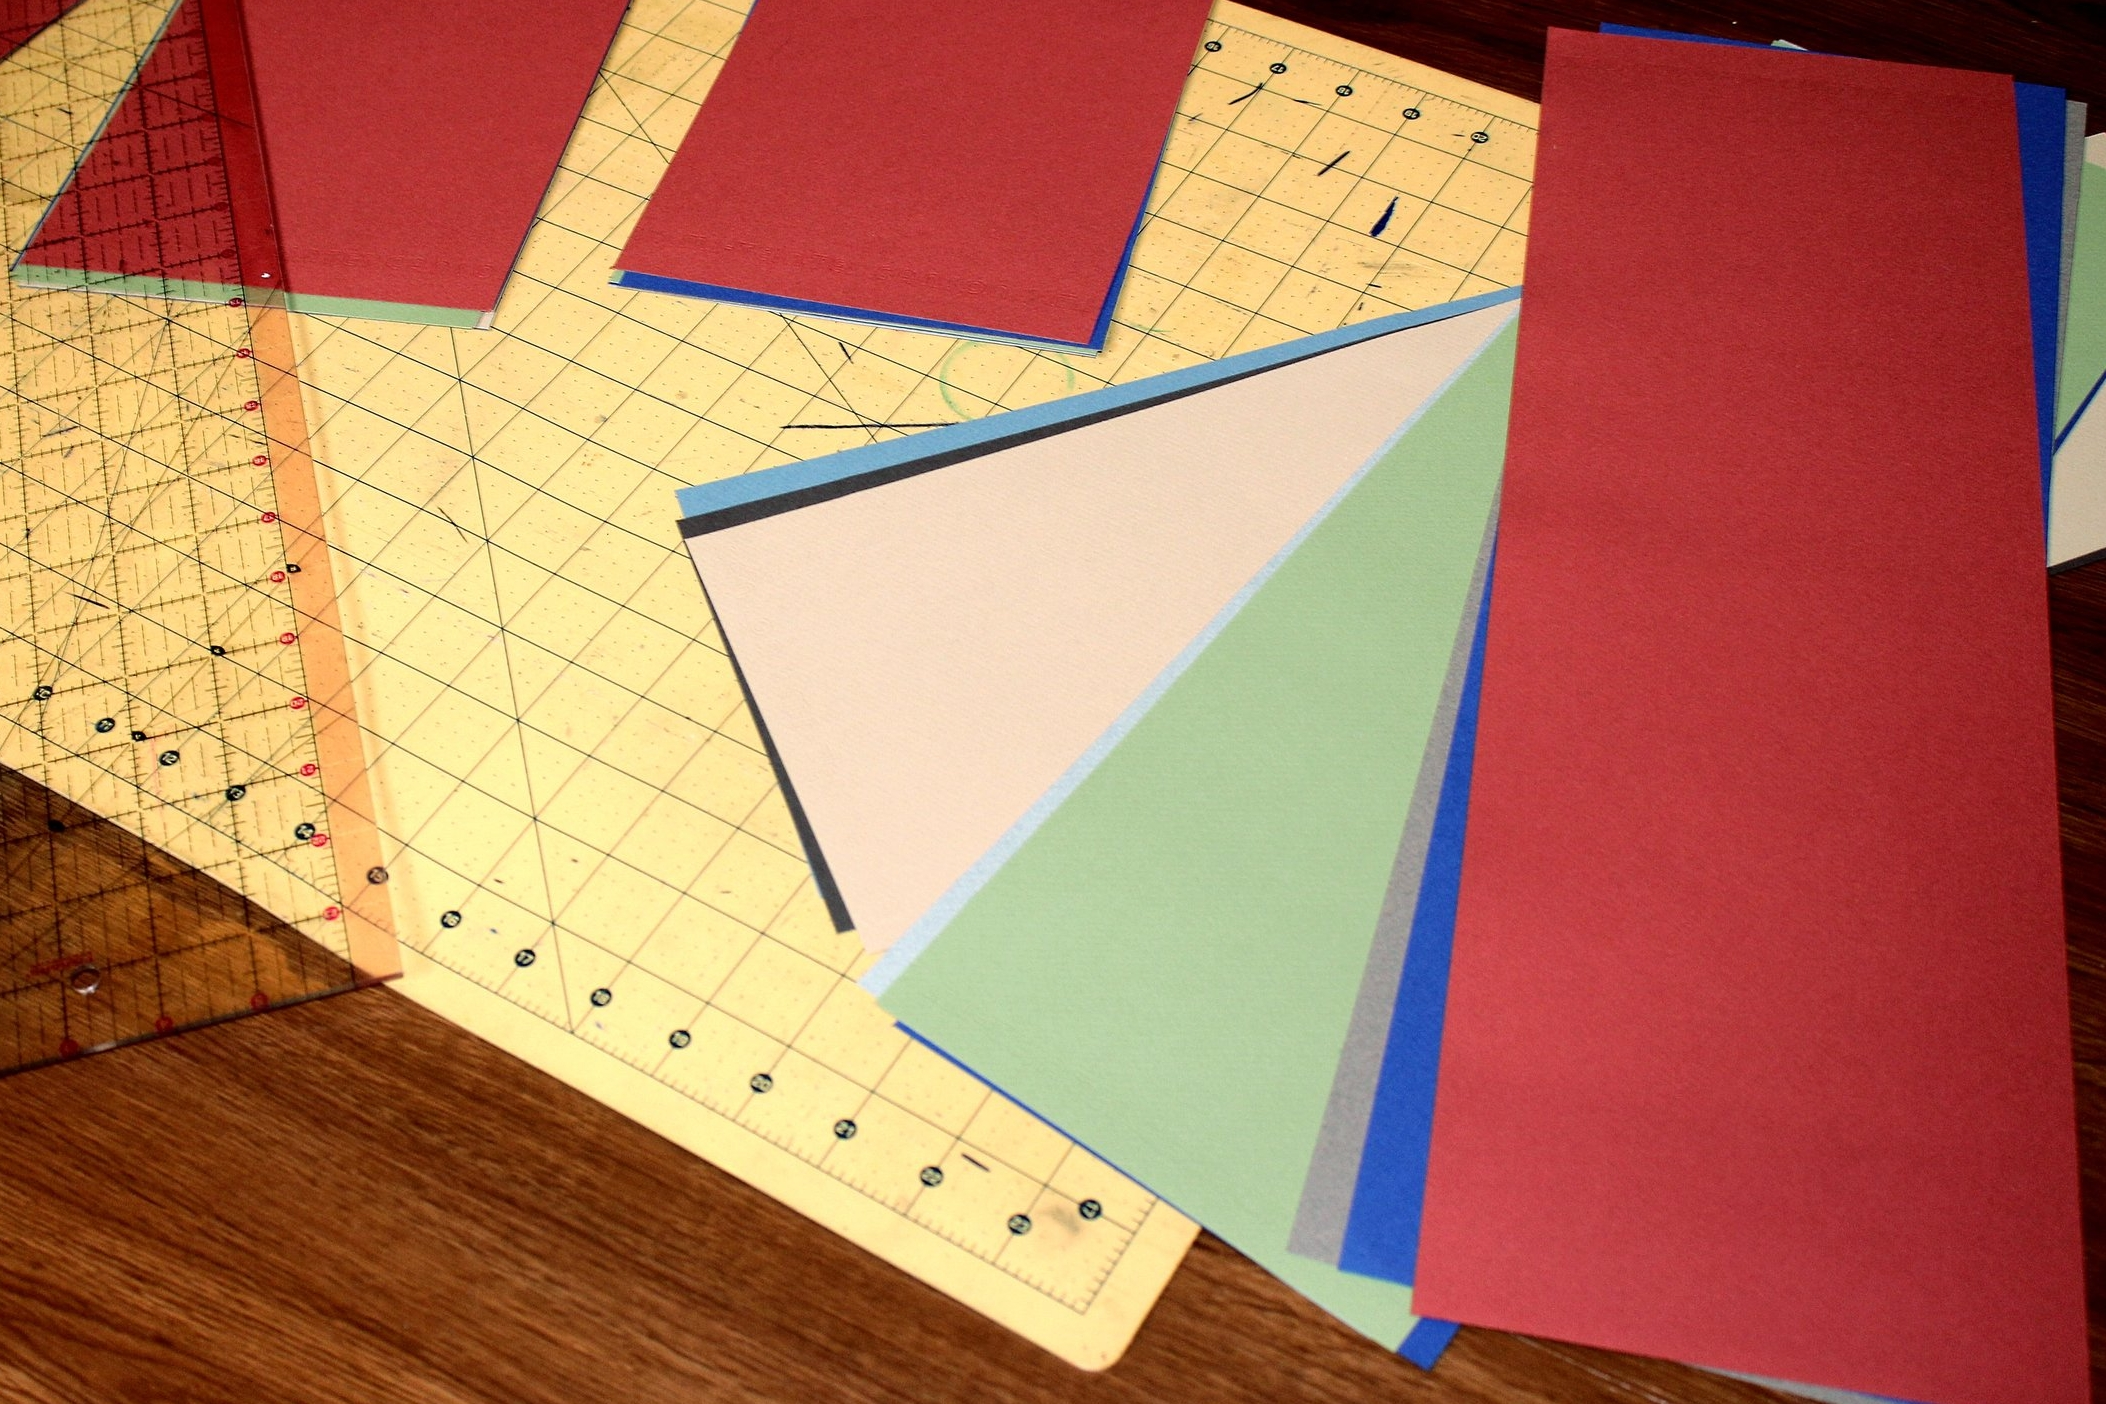 bookmaking tutorial describing cutting the paper